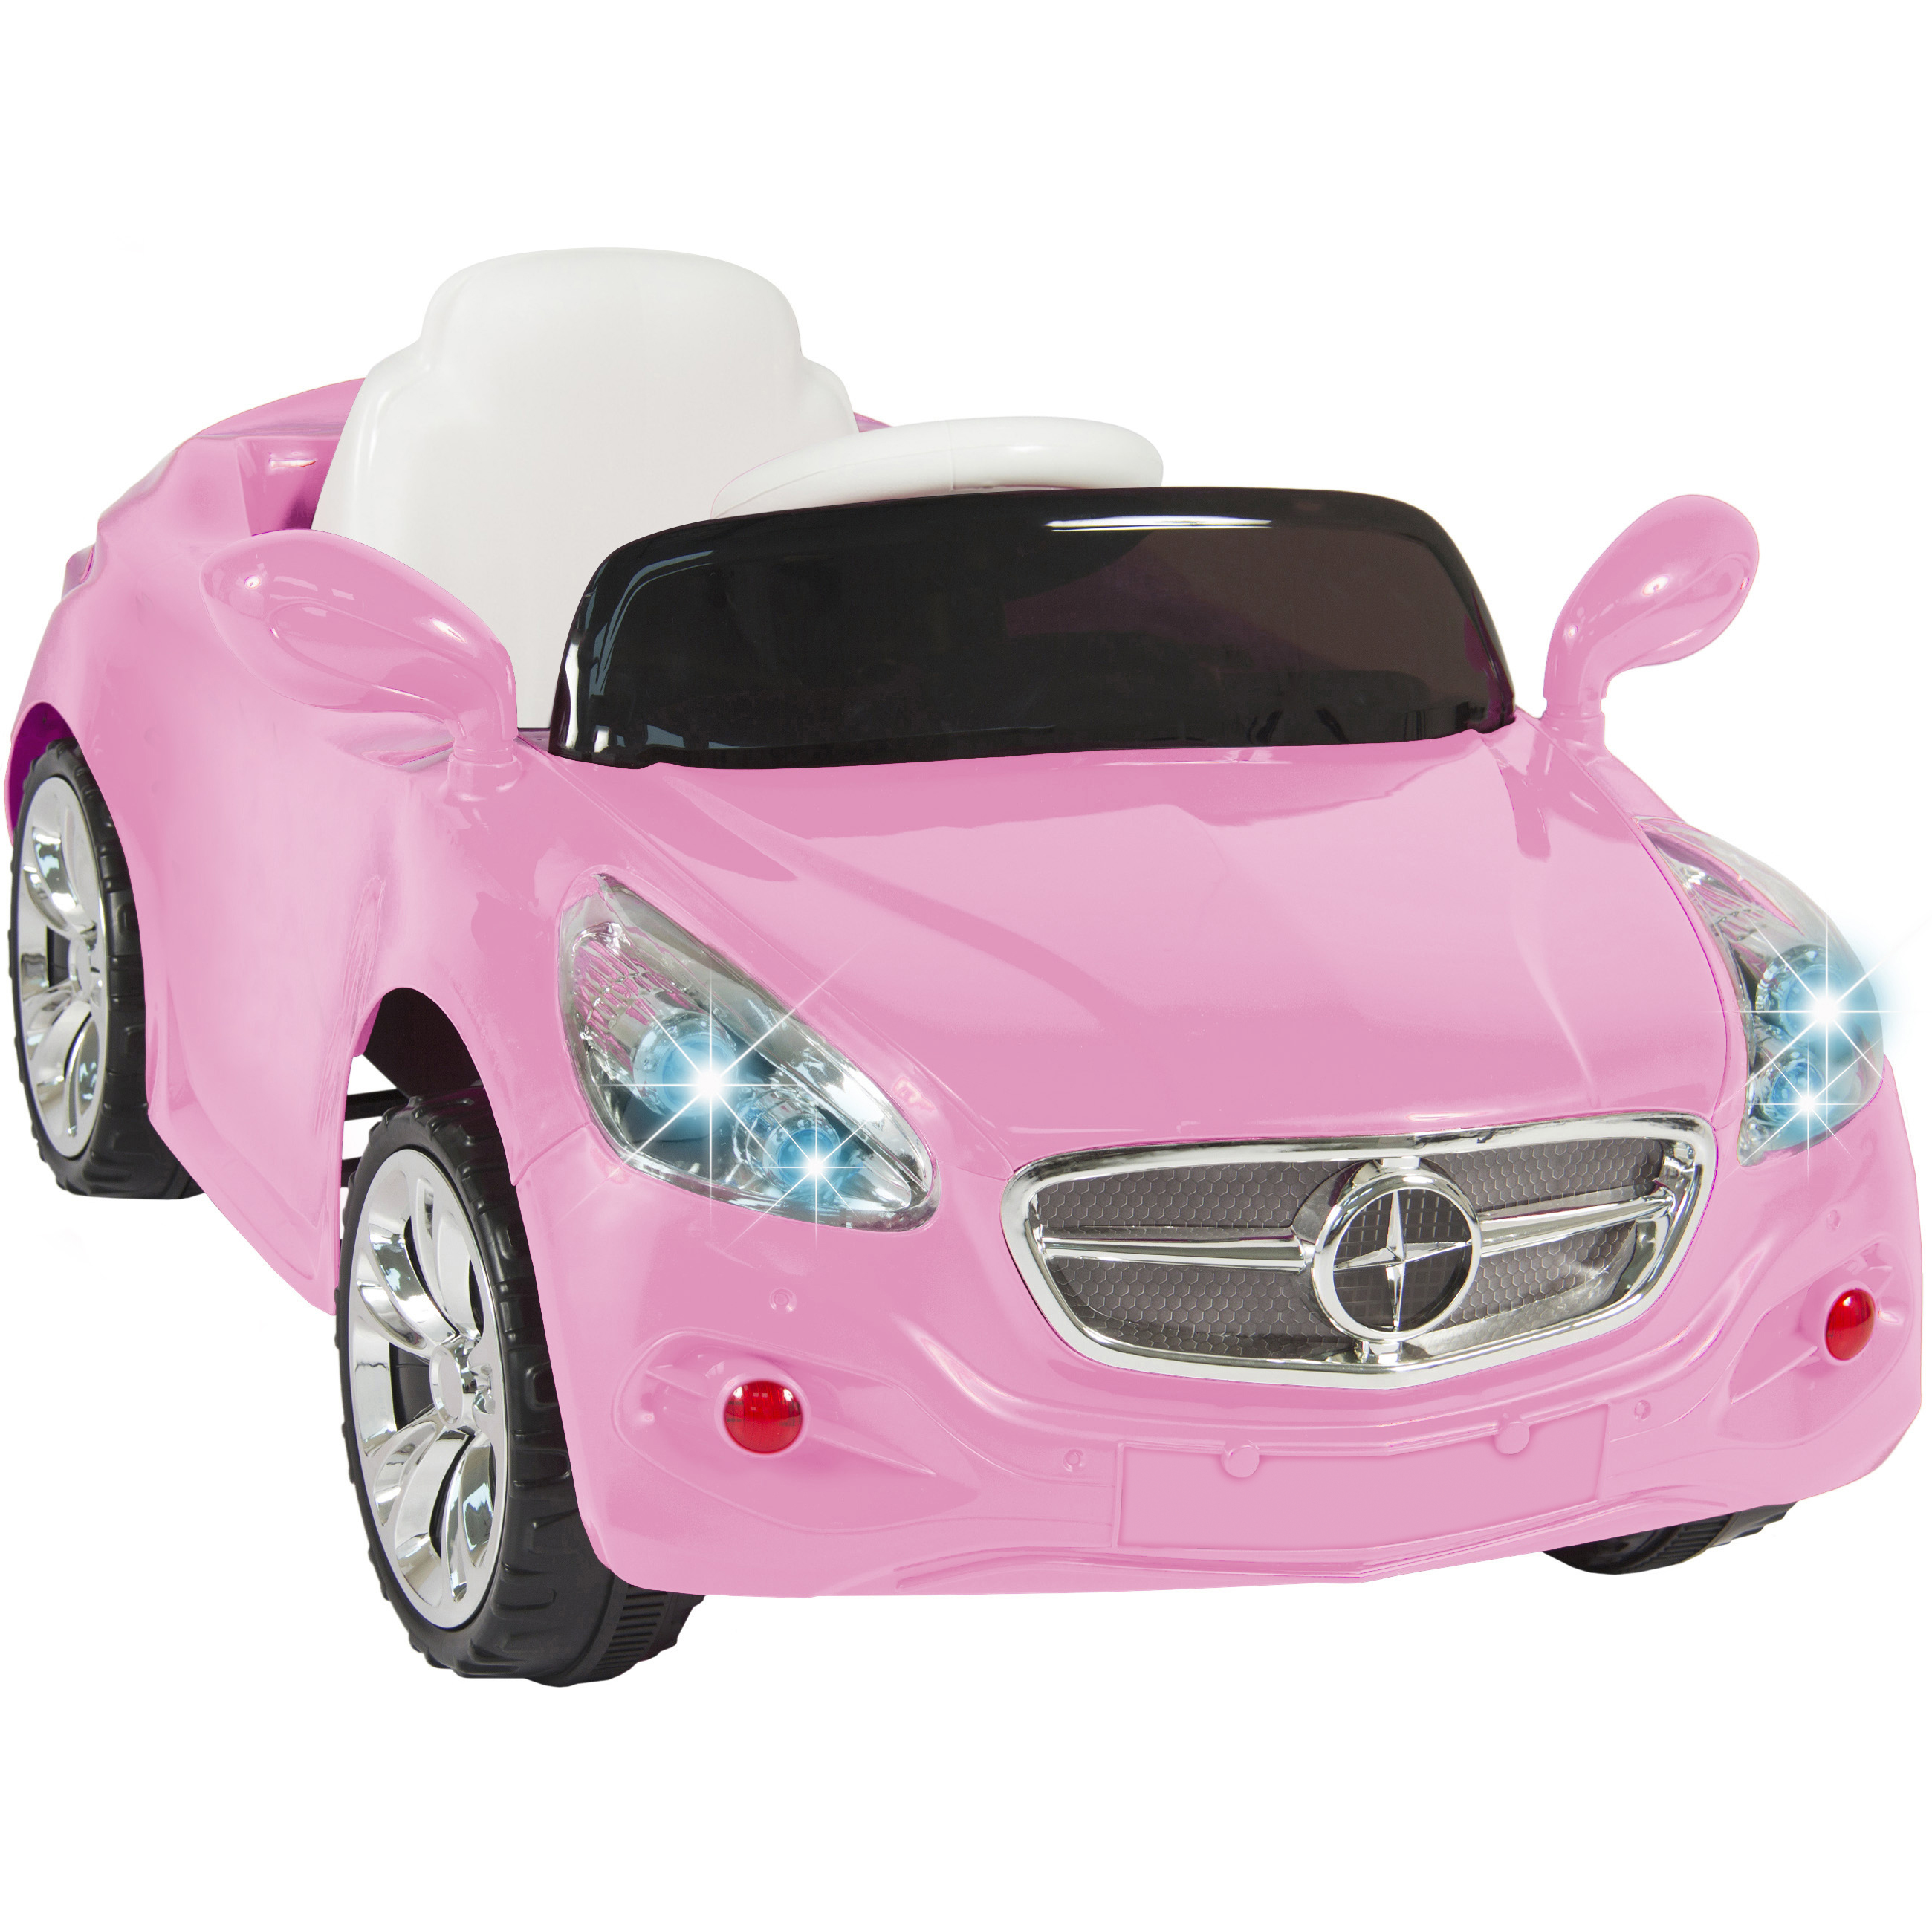 Battery Powered toddler Car New Minnie Convertible 6v Battery Powered Huffy Ride On Bigdealsmall